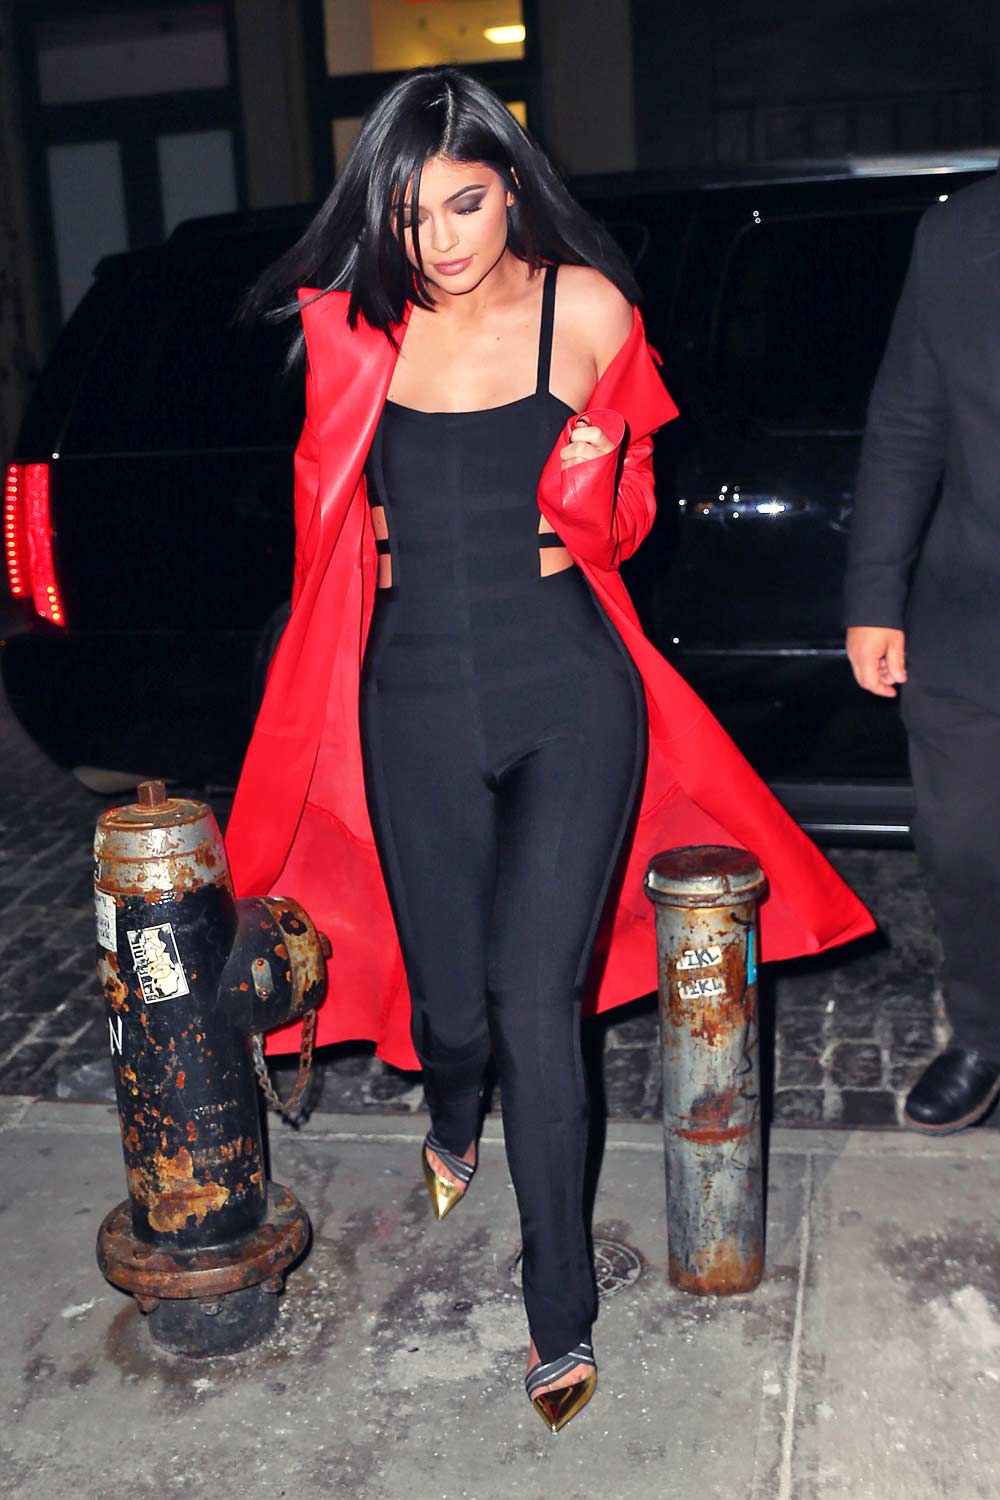 Kylie Jenner out & about in NYC